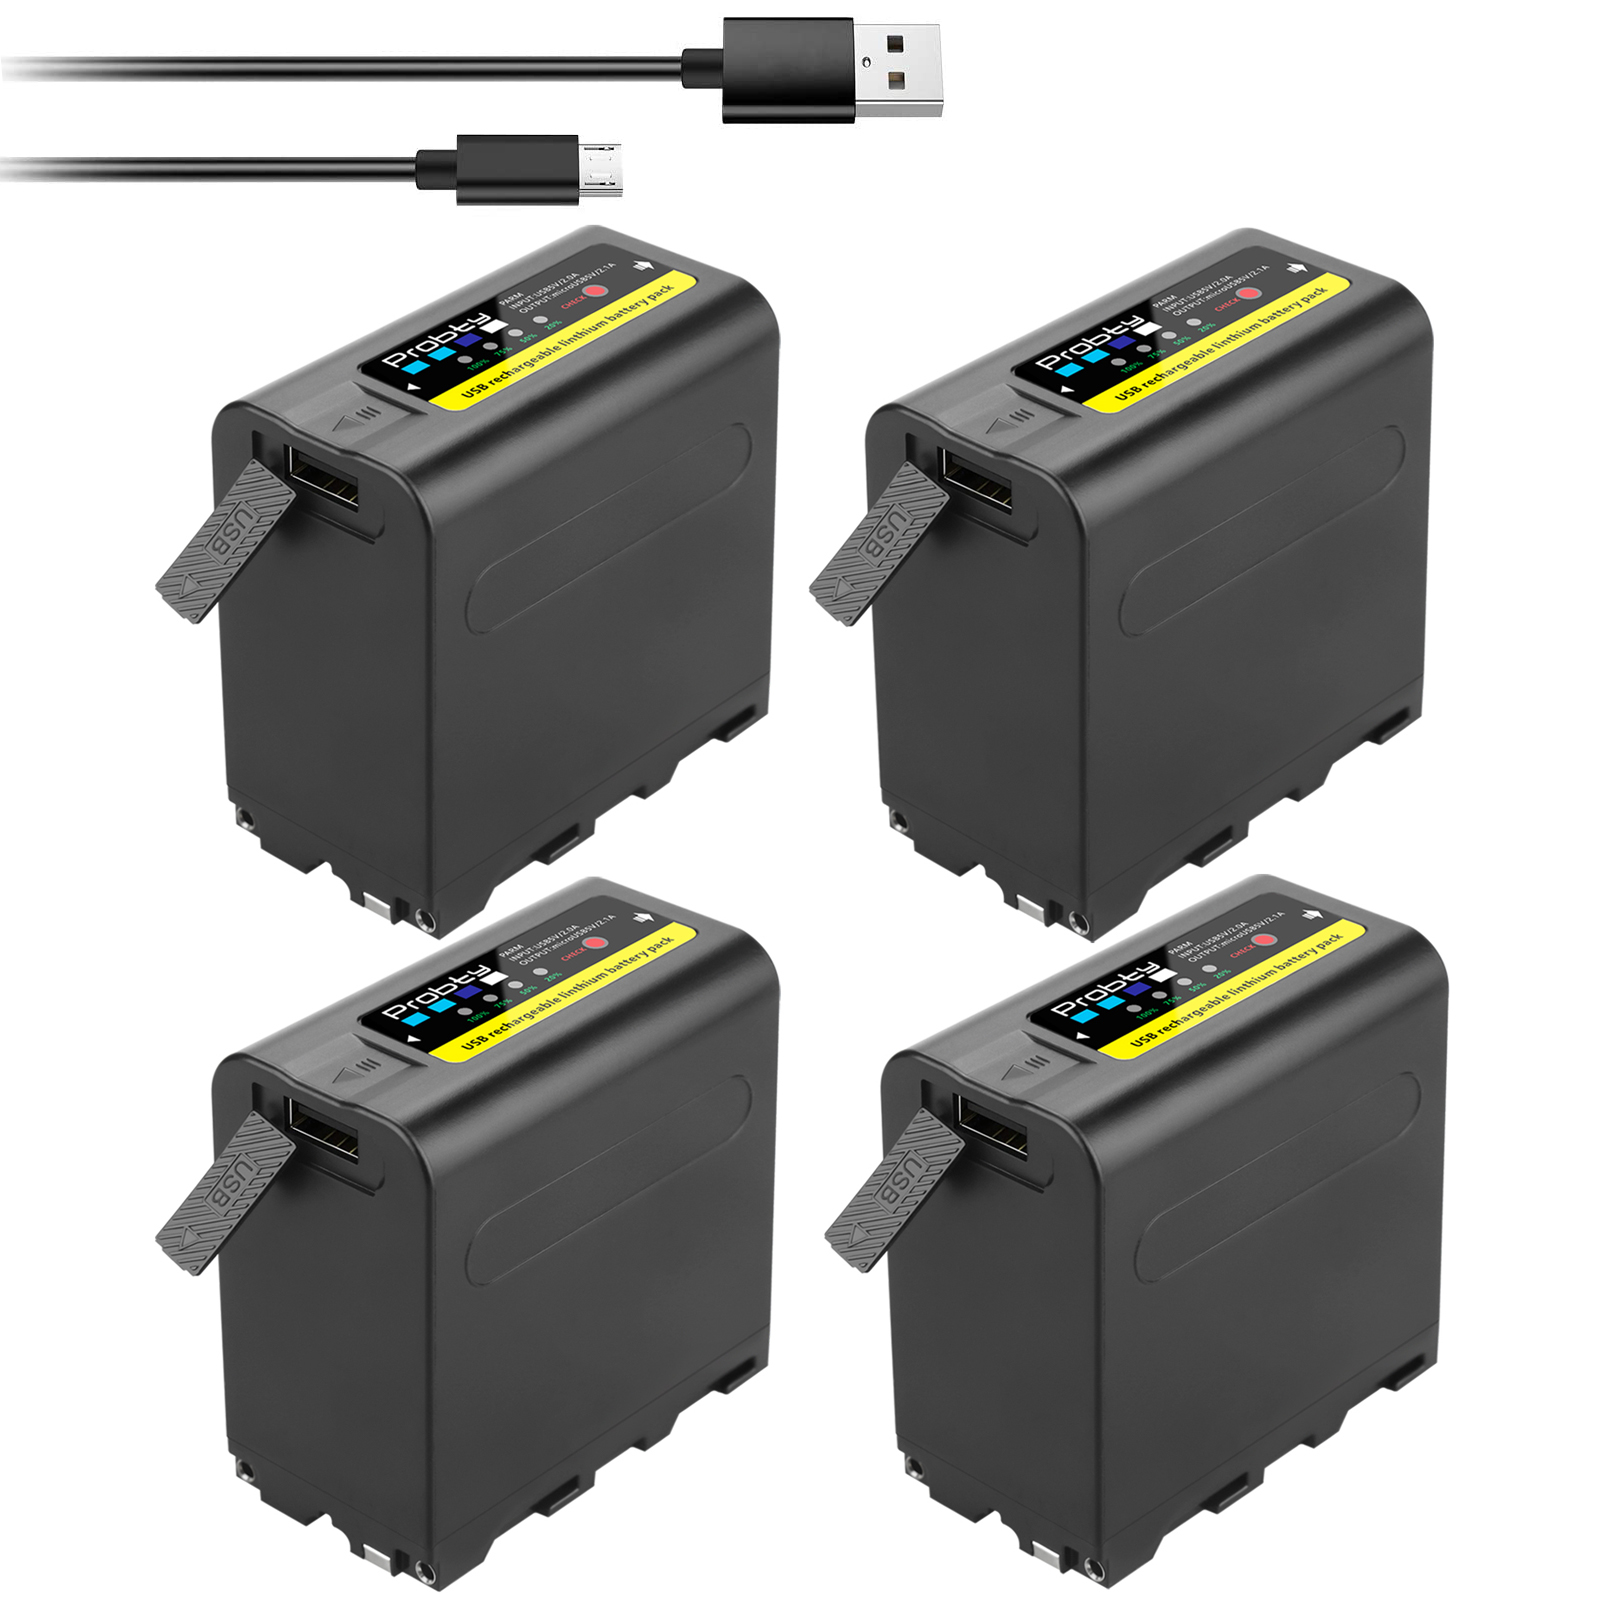 Led-Power-Indicator Np-F970-Battery Usb-Output 8800mah with for Sony Np-f960/Np-f950/Np-f930/..